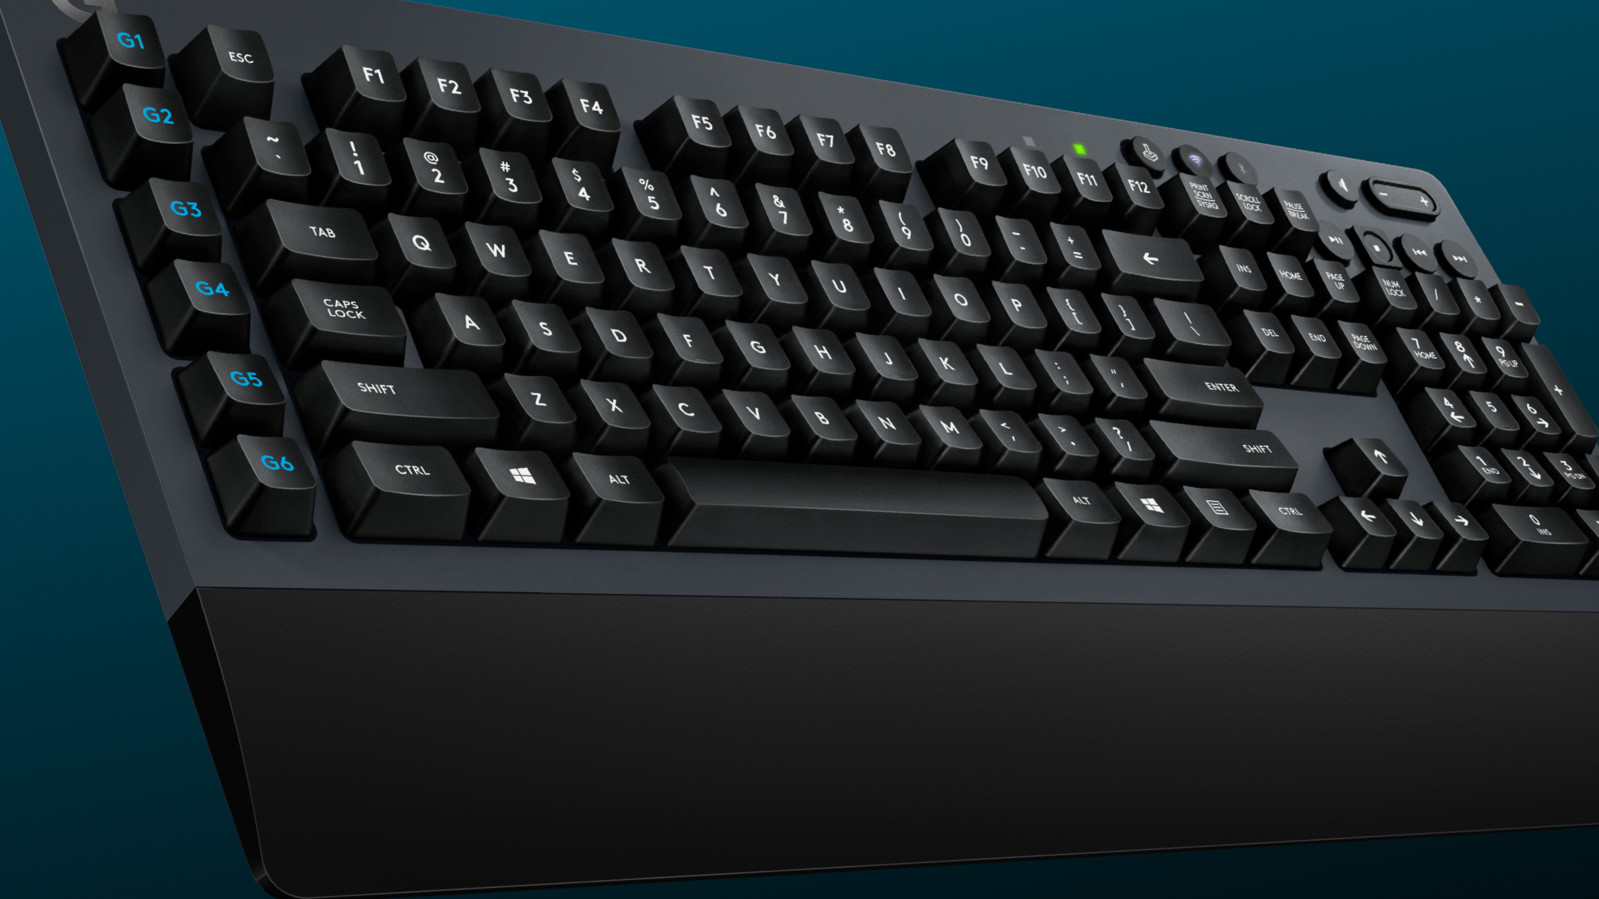 Best wireless gaming keyboard in 2019 | PC Gamer